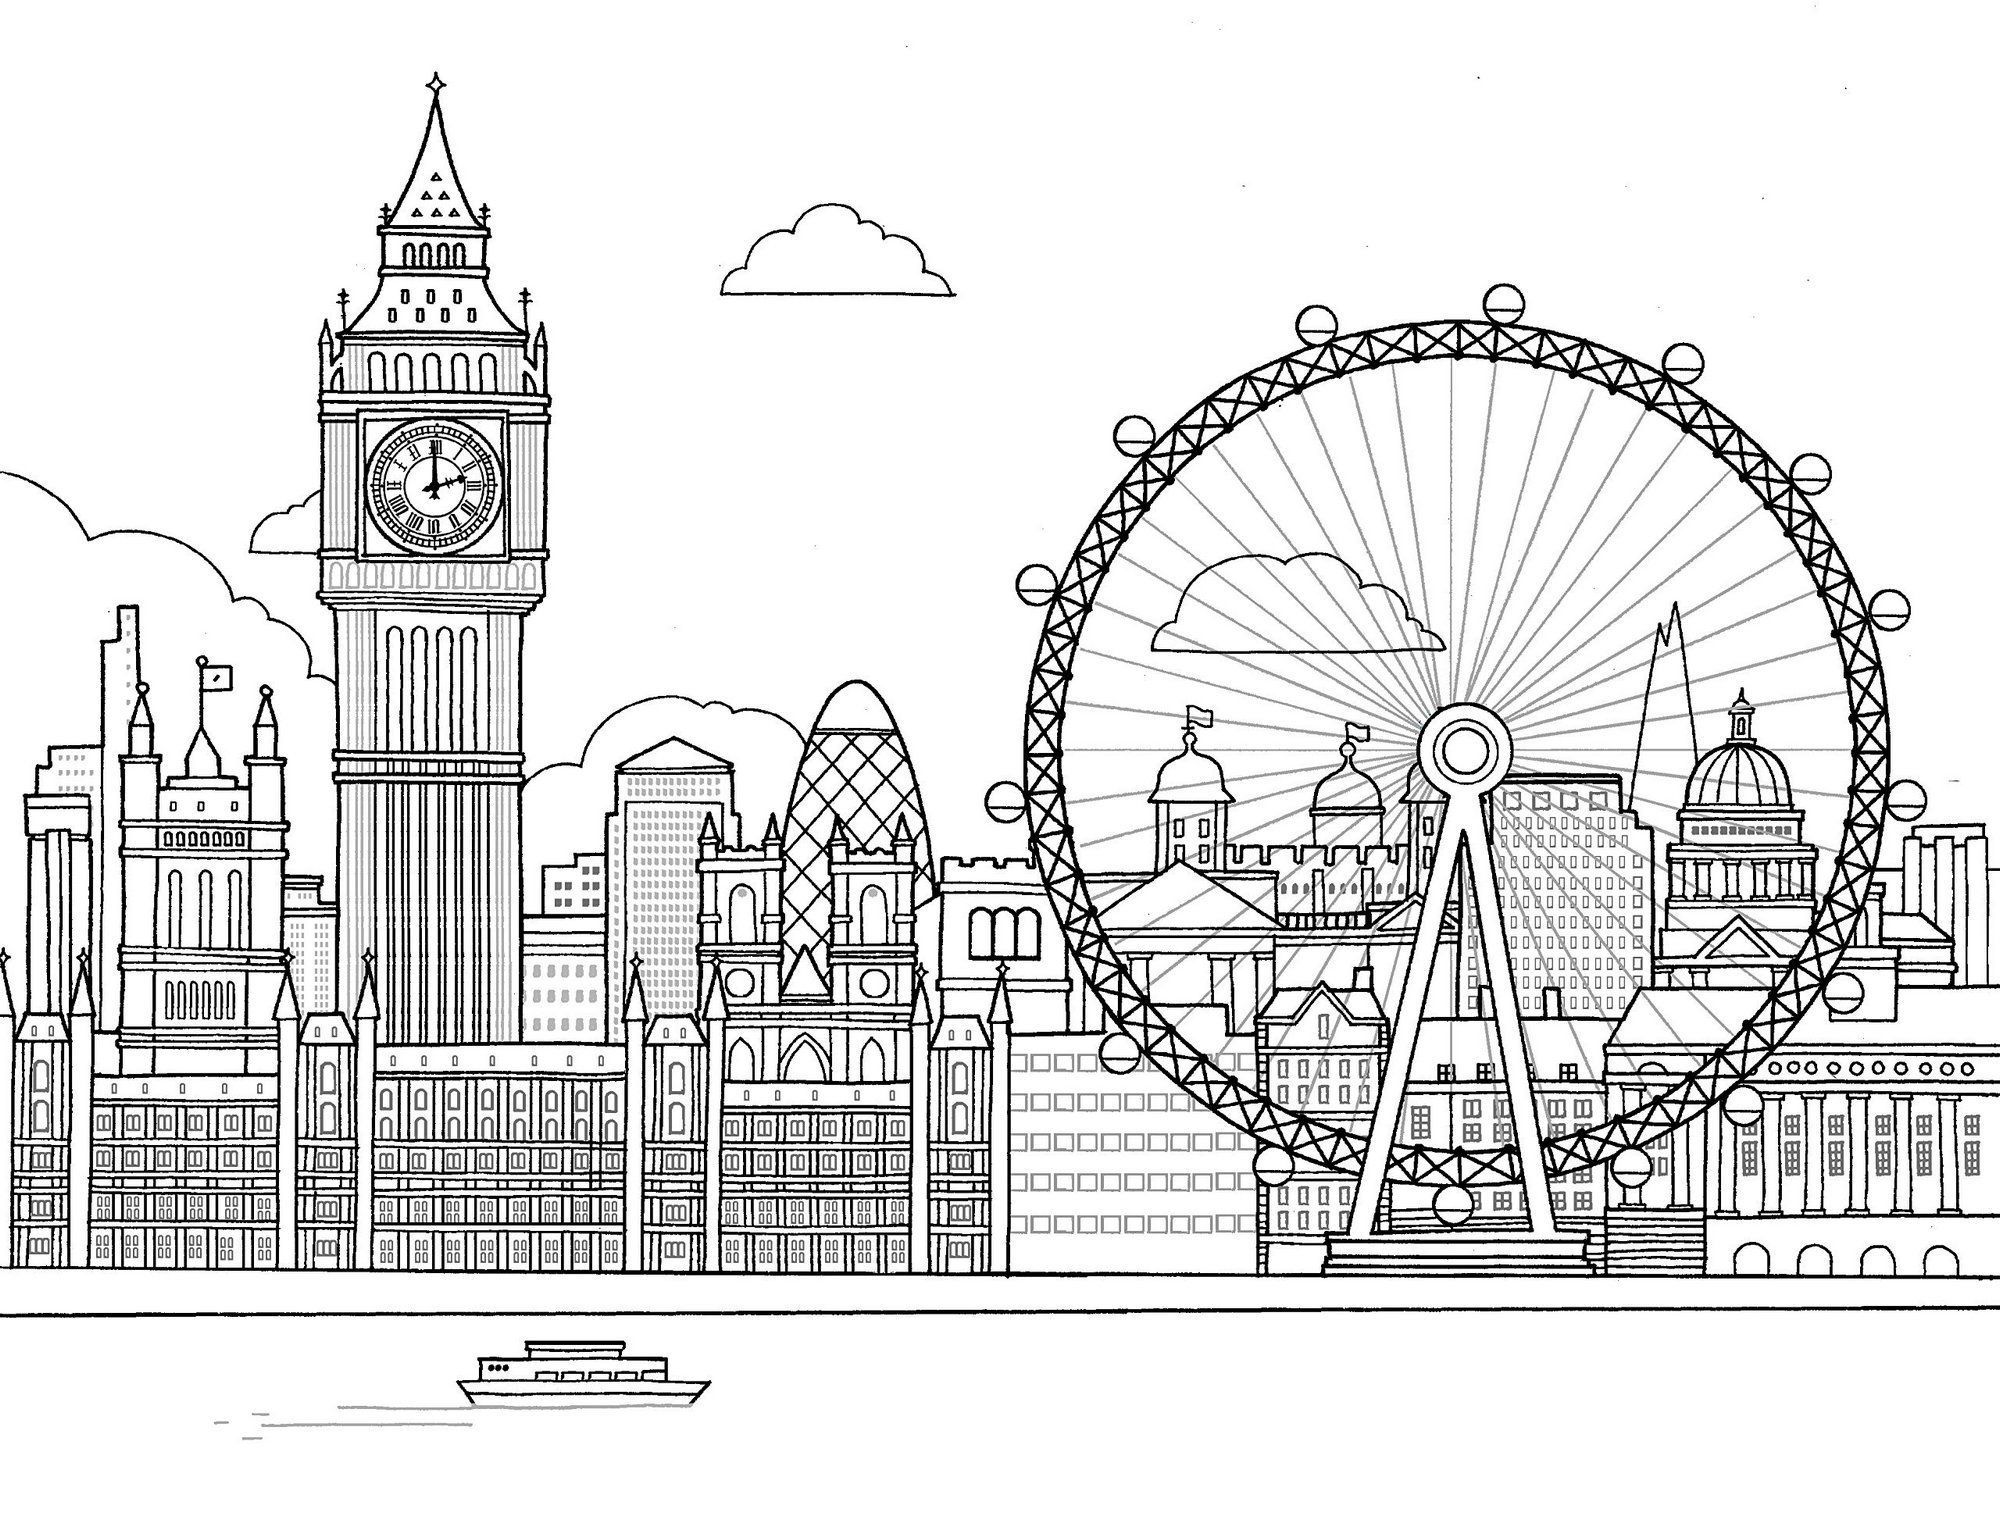 the London Eye Coloring Page Galactic VBS 2017 London